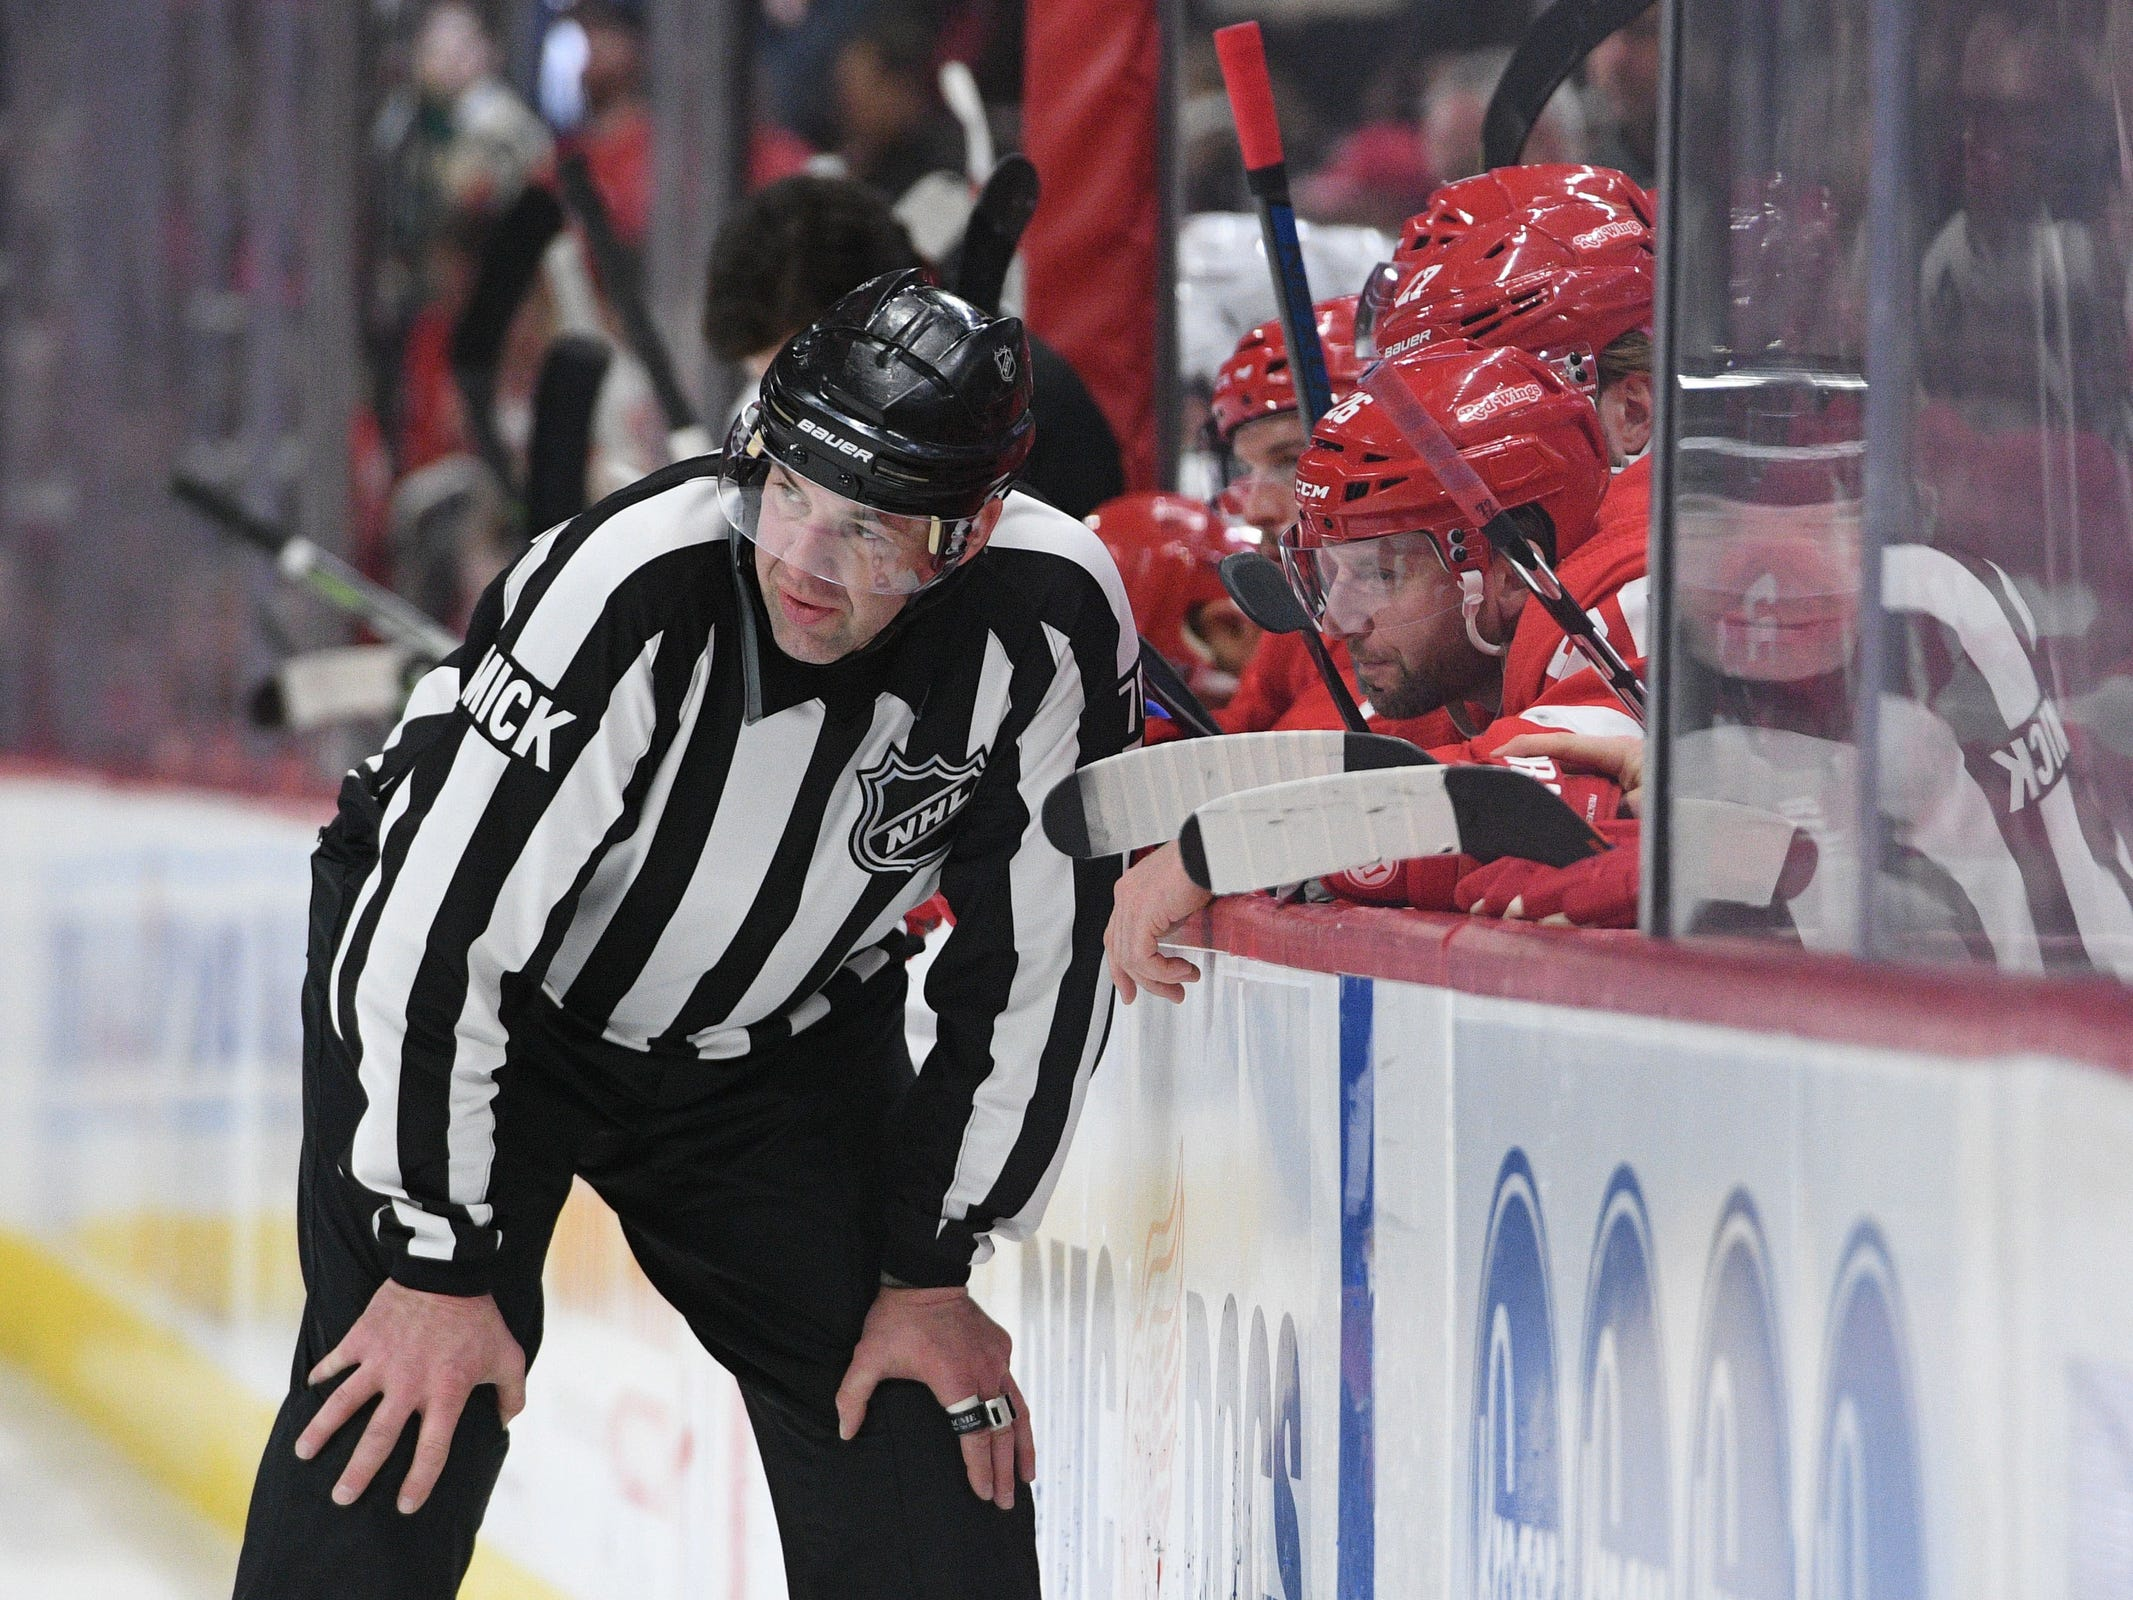 NHL linesman Brian Mach (78) talks to Detroit Red Wings left wing Thomas Vanek (26) during the game against the Minnesota Wild at Little Caesars Arena on Feb. 22, 2019.